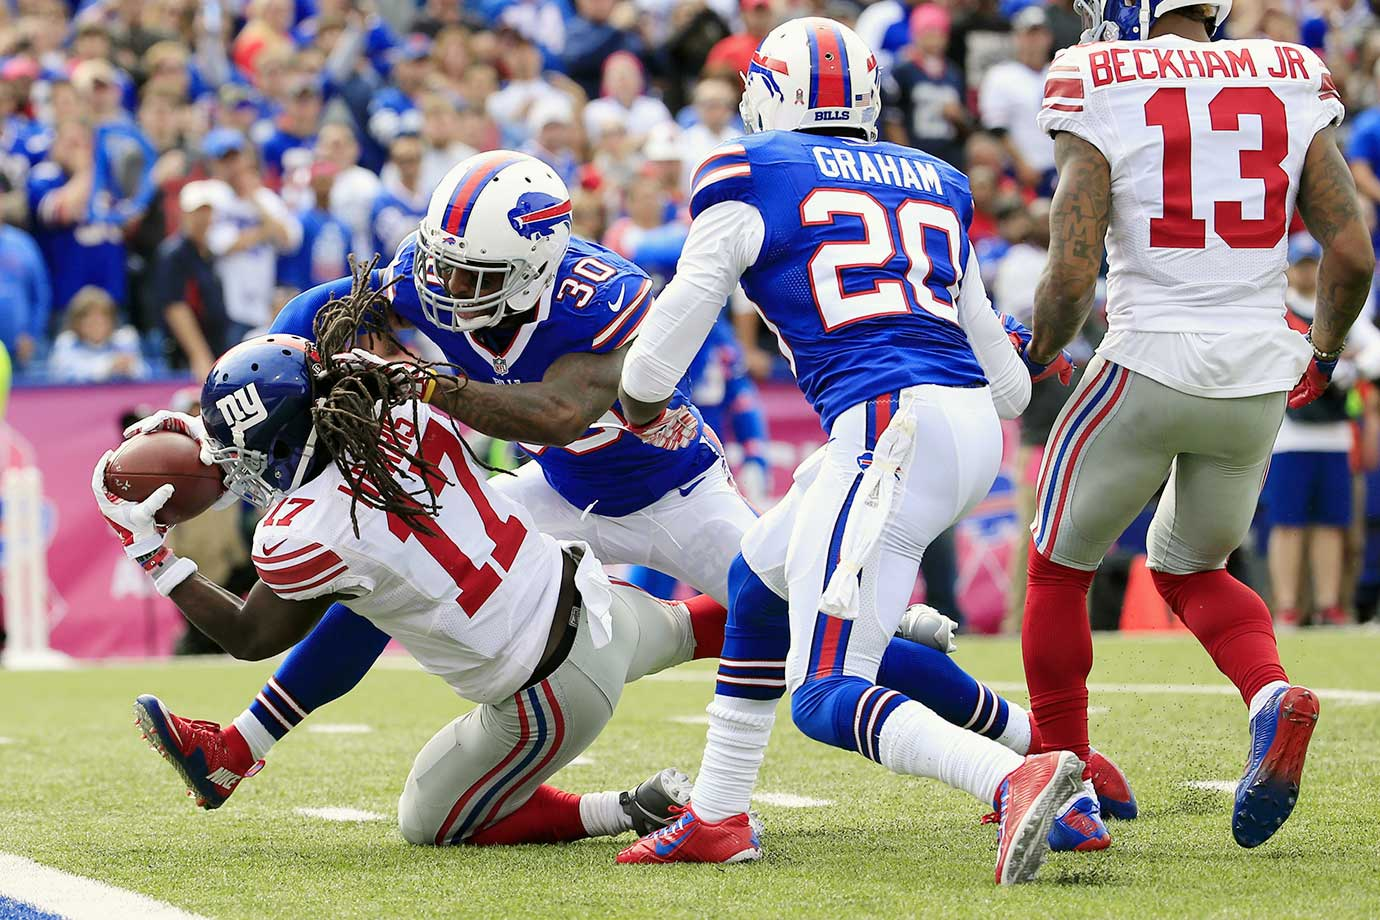 The Bills have technically scored closer to their projections than the Chargers and 49ers, but both of those teams were expected to field bottom-10 defenses. Buffalo was projected by Yahoo! as the No. 2 D/ST during the preseason, as Rex Ryan's high-pressure scheme was supposed to generate a ton of turnovers. That rosy outlook hasn't exactly panned out. The Bills have only forced 18 turnovers through 12 games, have yet to record three sacks in a game and are averaging just 1.5 takedowns per contest.